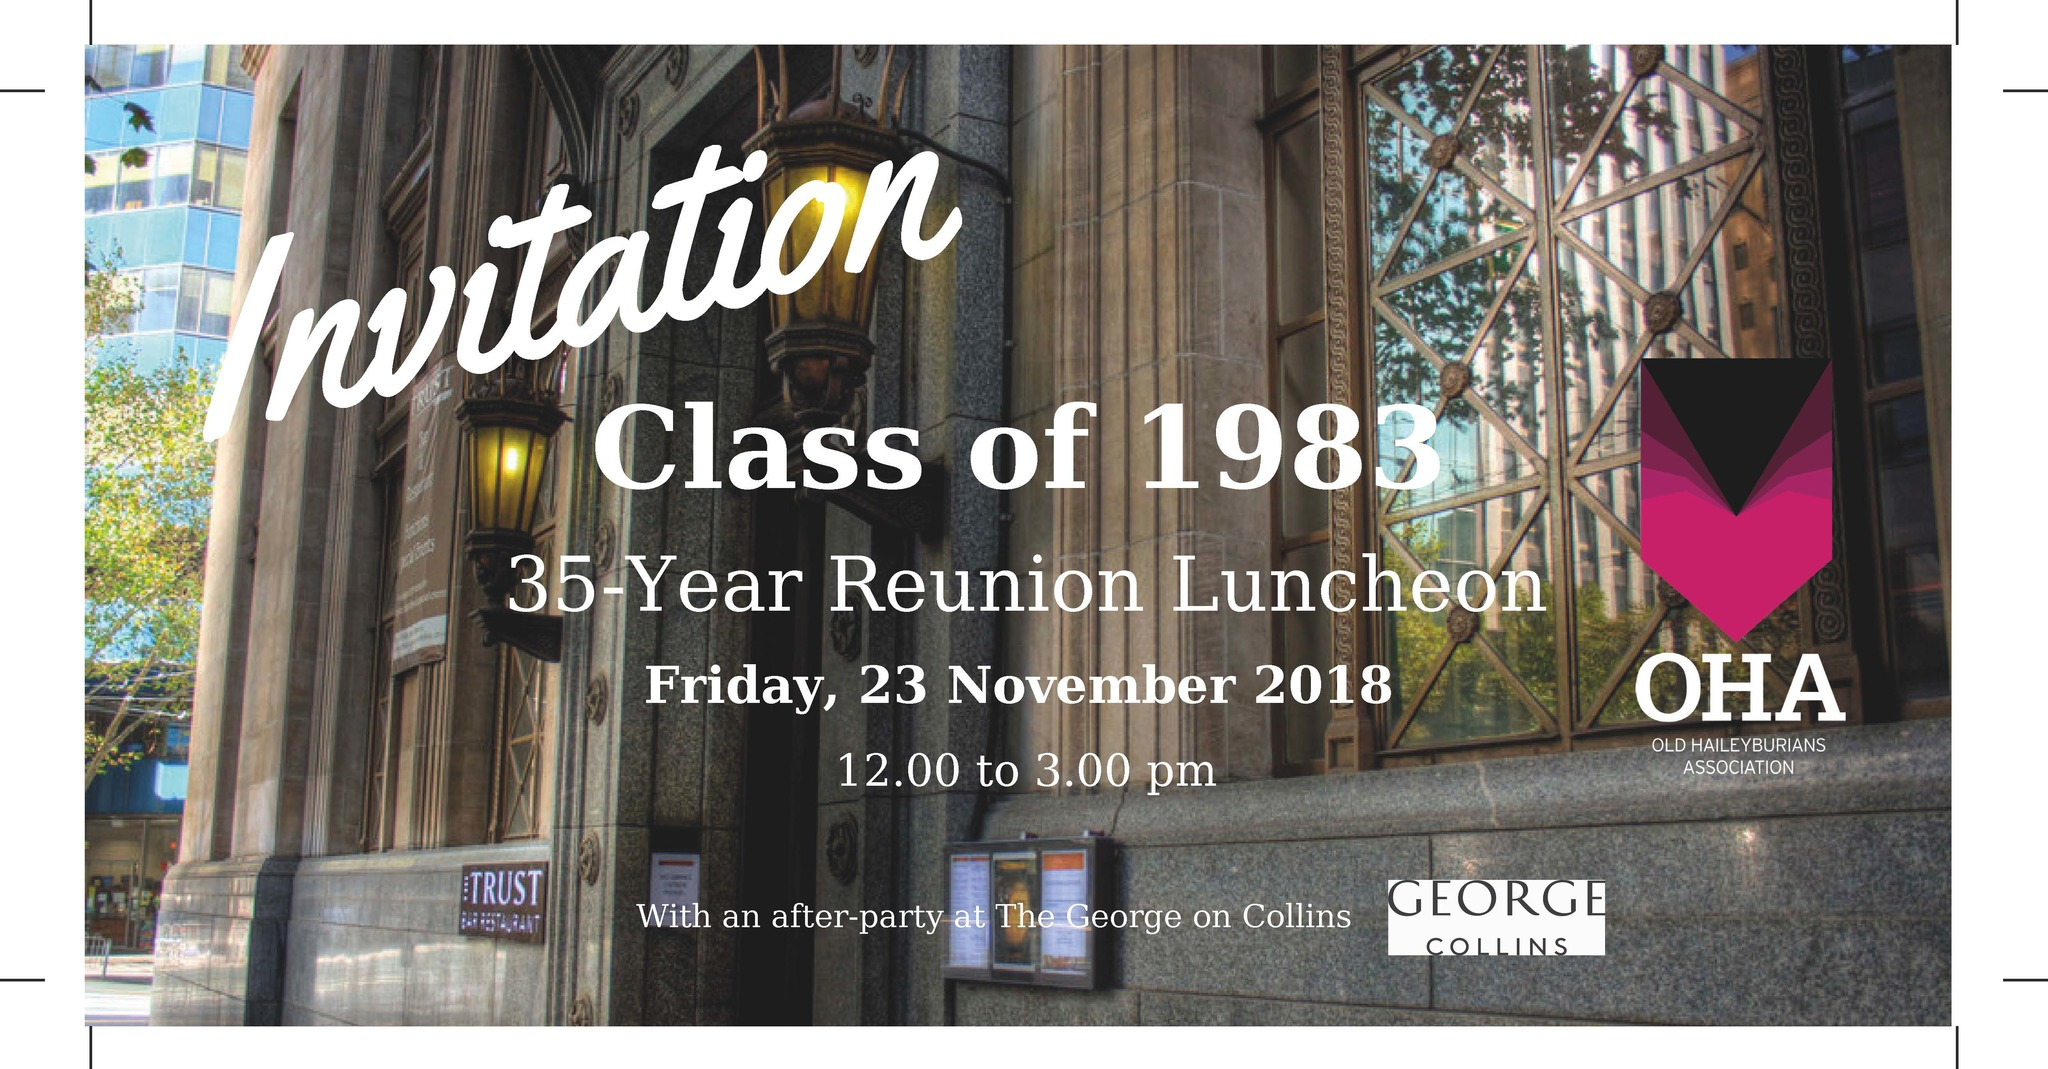 Class of 1983 - 35 Year Reunion